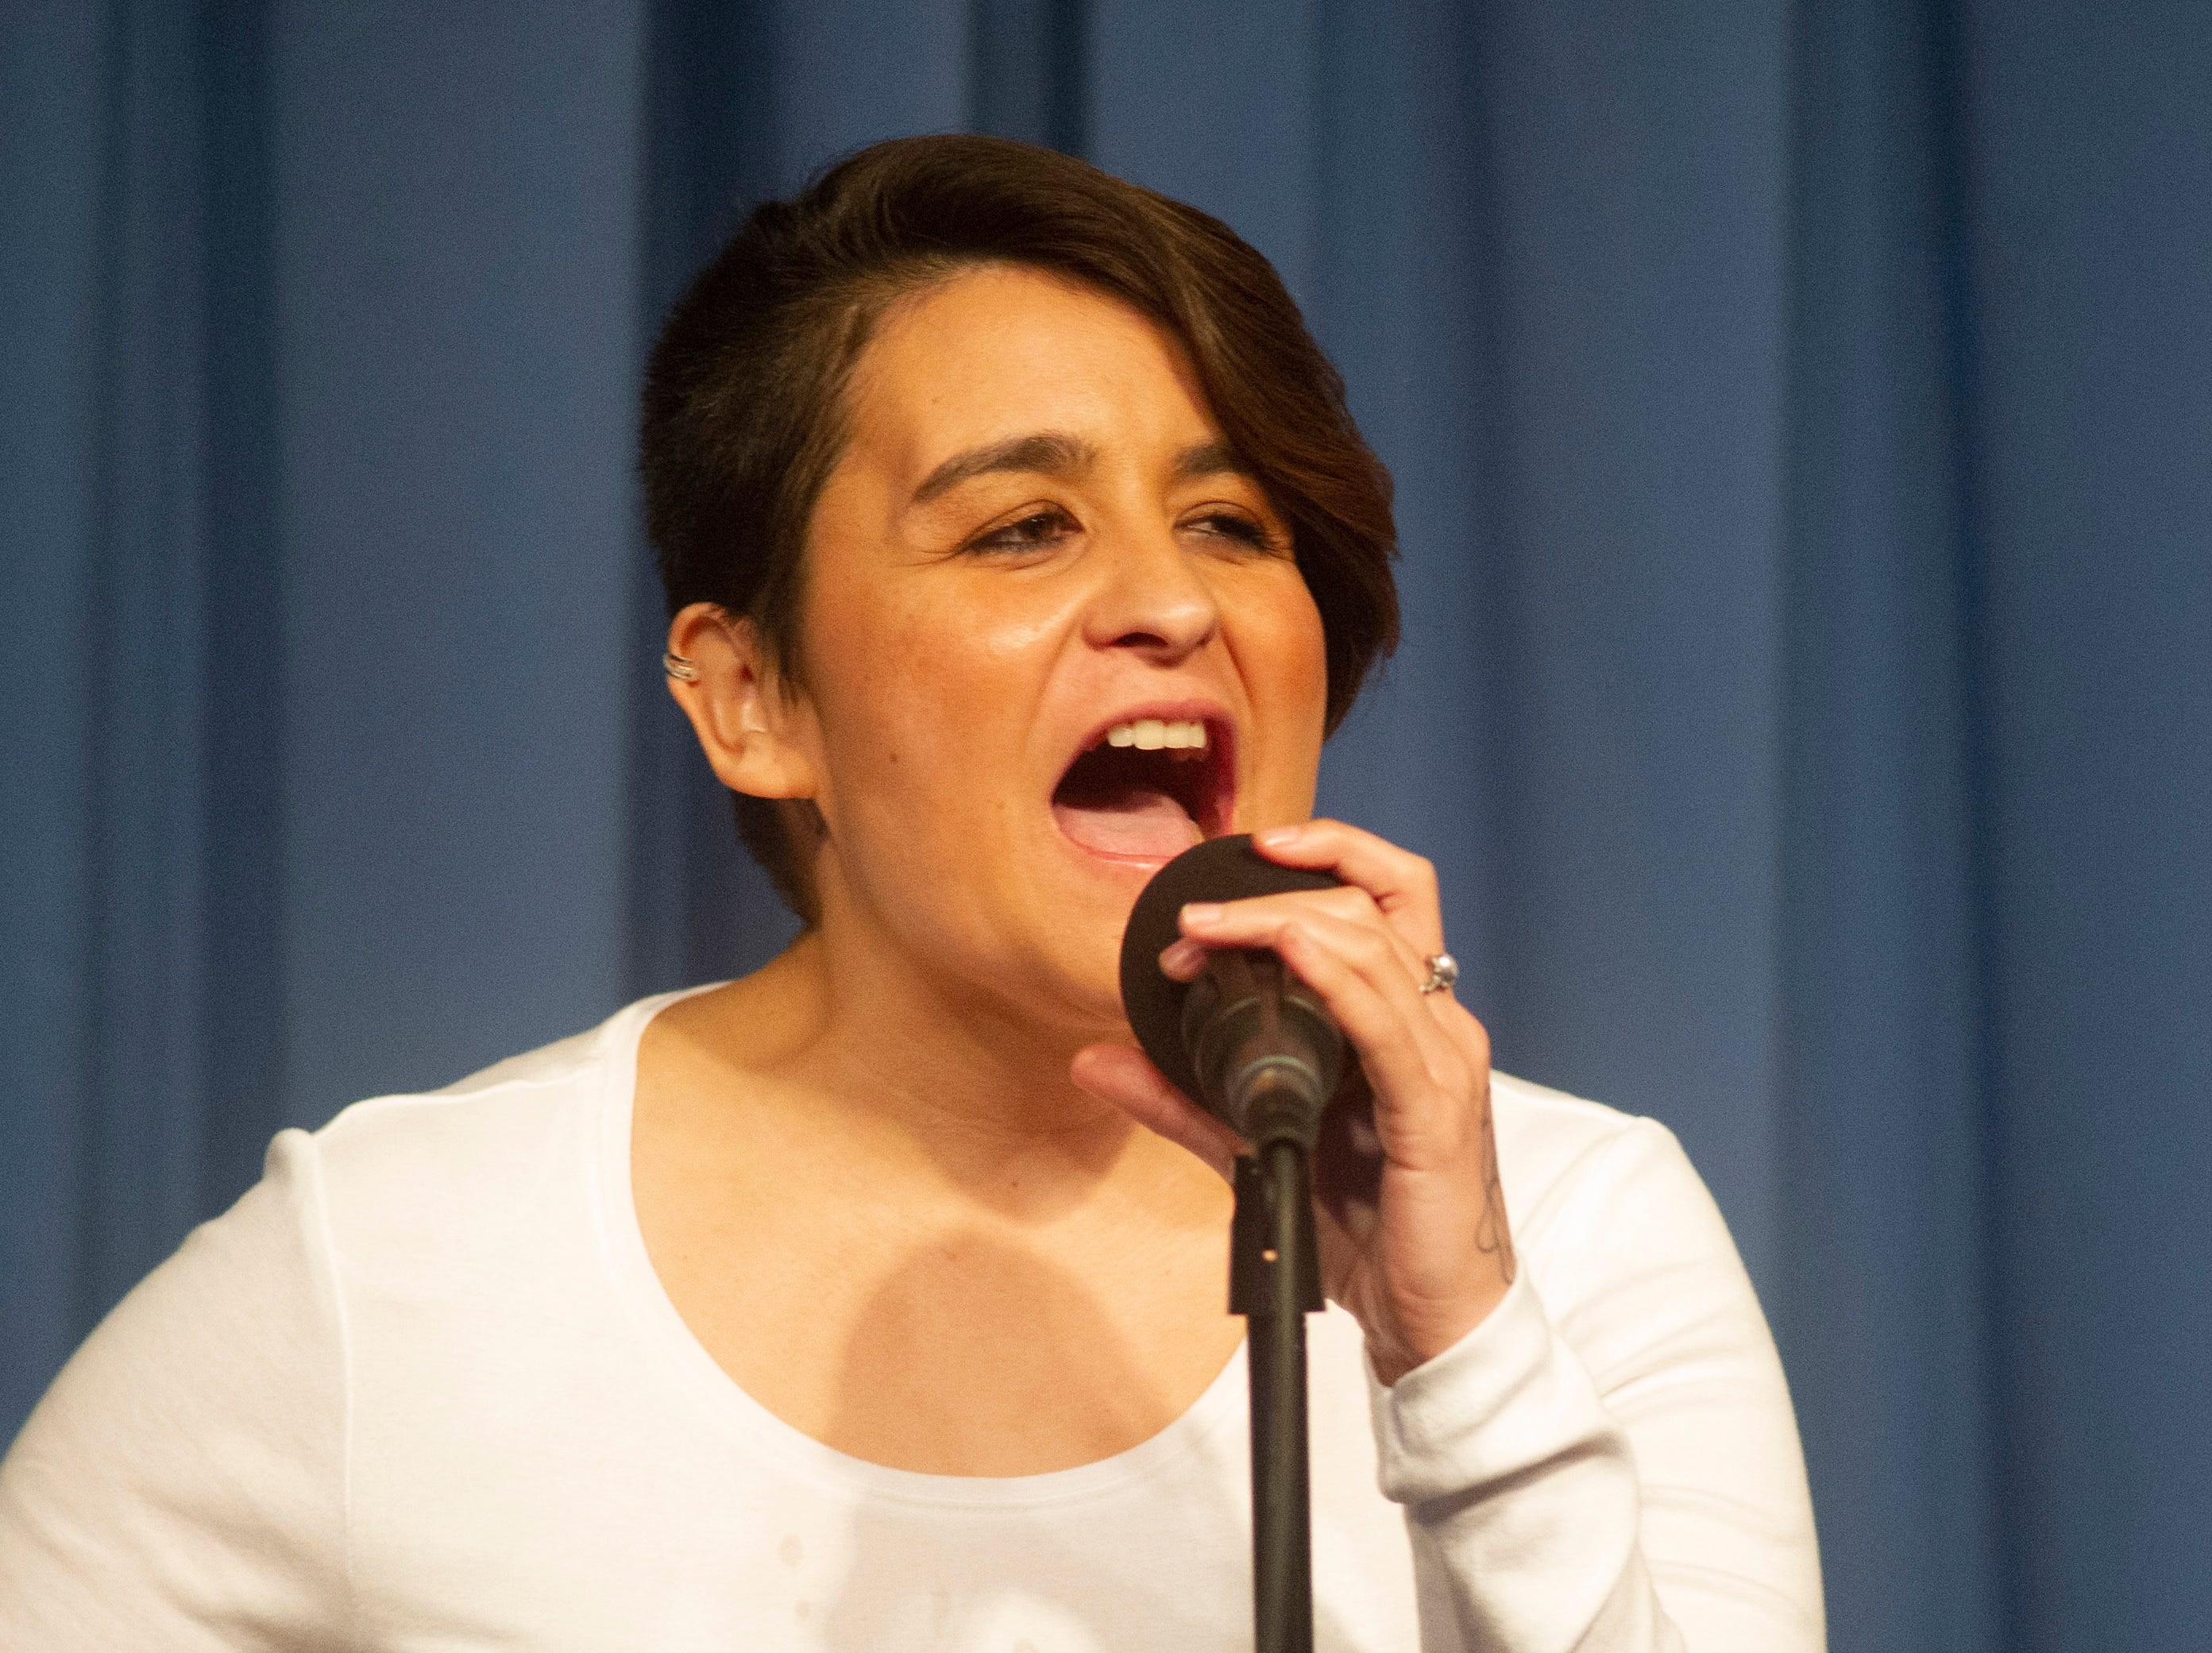 Monique Gonzalez shares the story of finding her passion as part of the live Ventura Storytellers Project event at the Ventura Harbor Comedy Club on Wednesday.